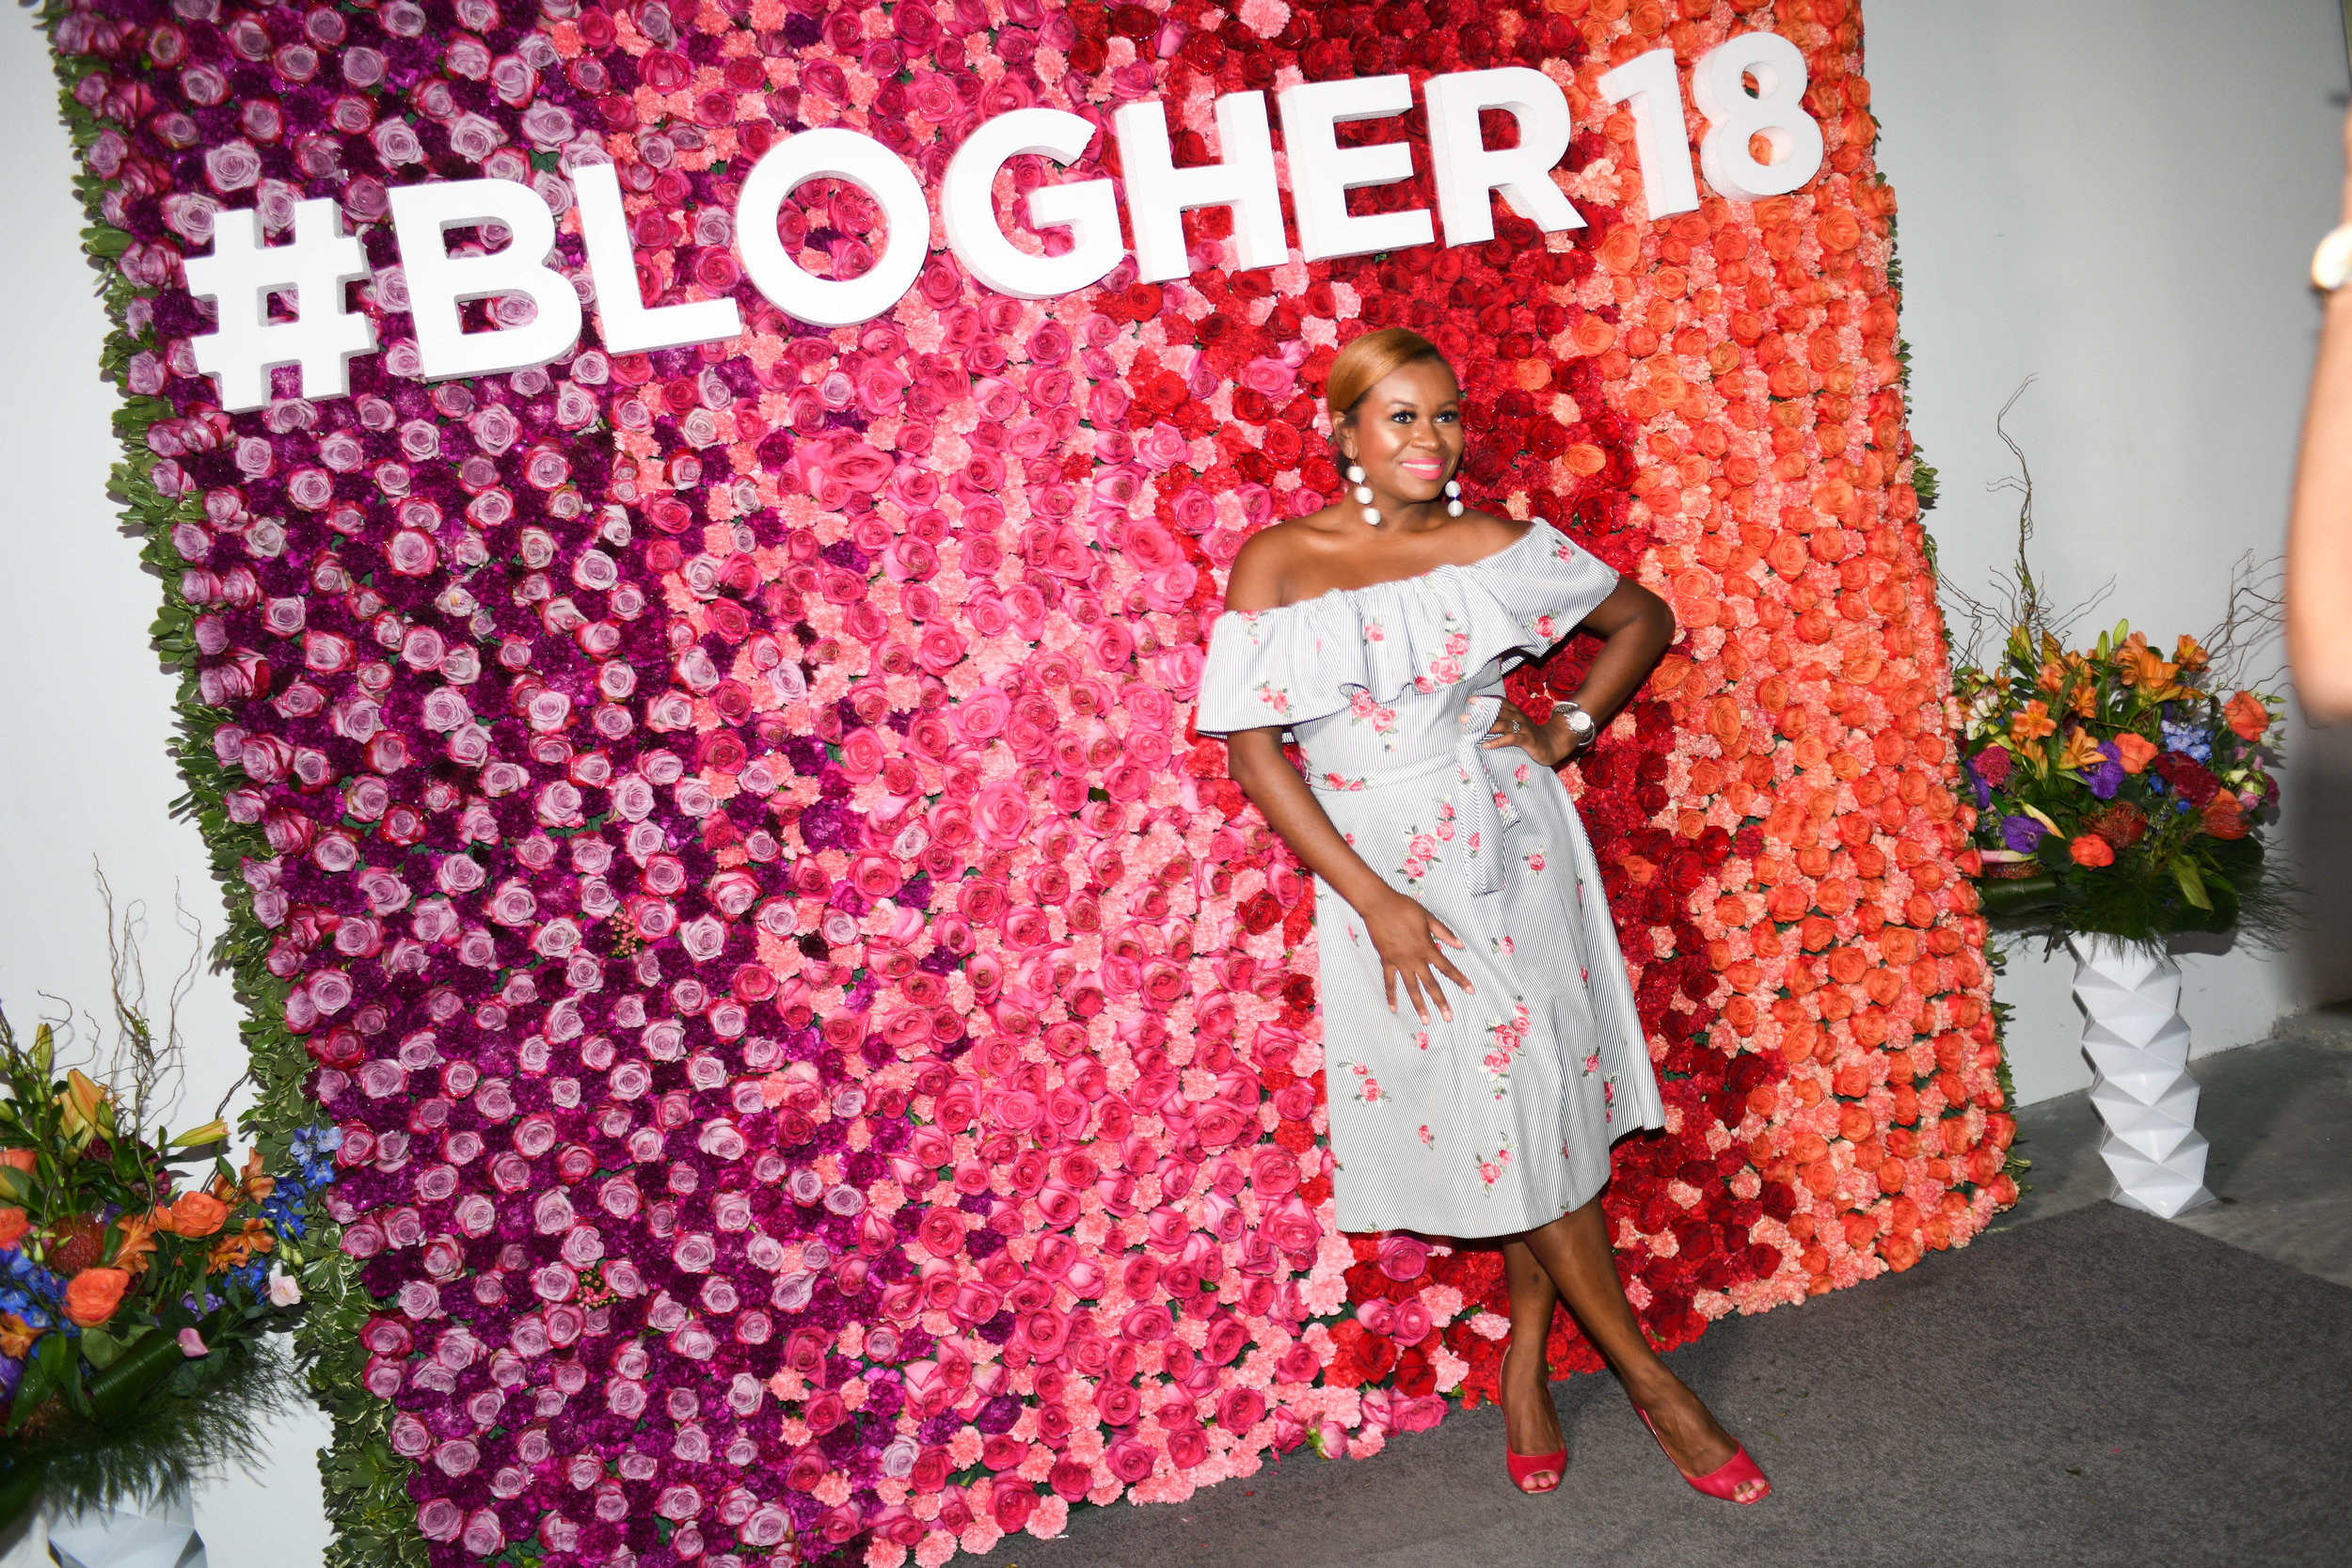 #BlogHer18 Creators Summit